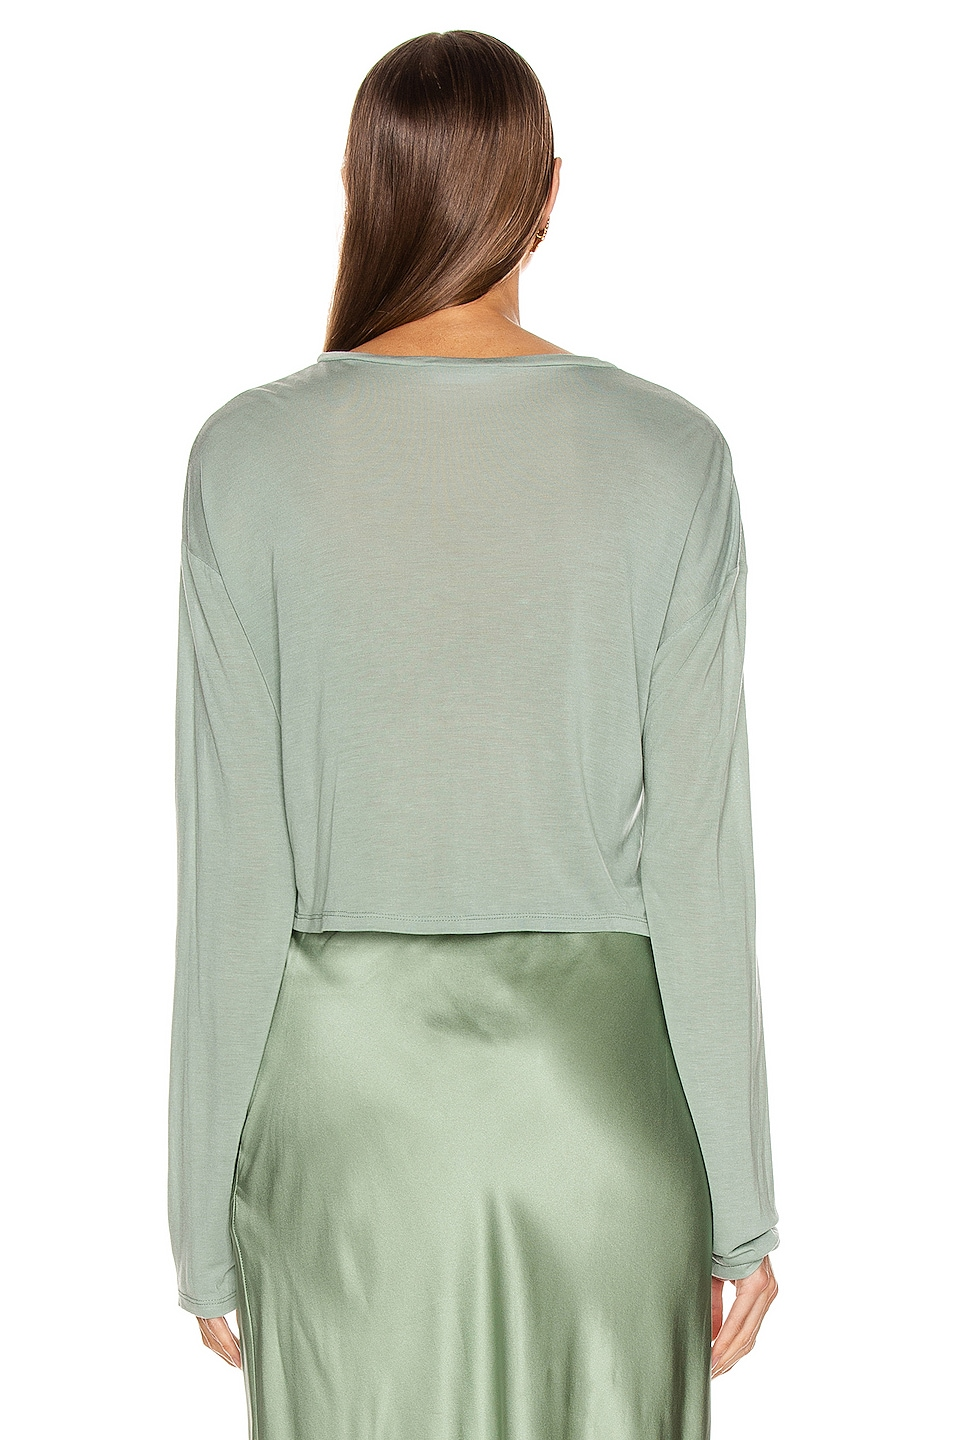 Image 3 of SABLYN Jaimie Top in Mint